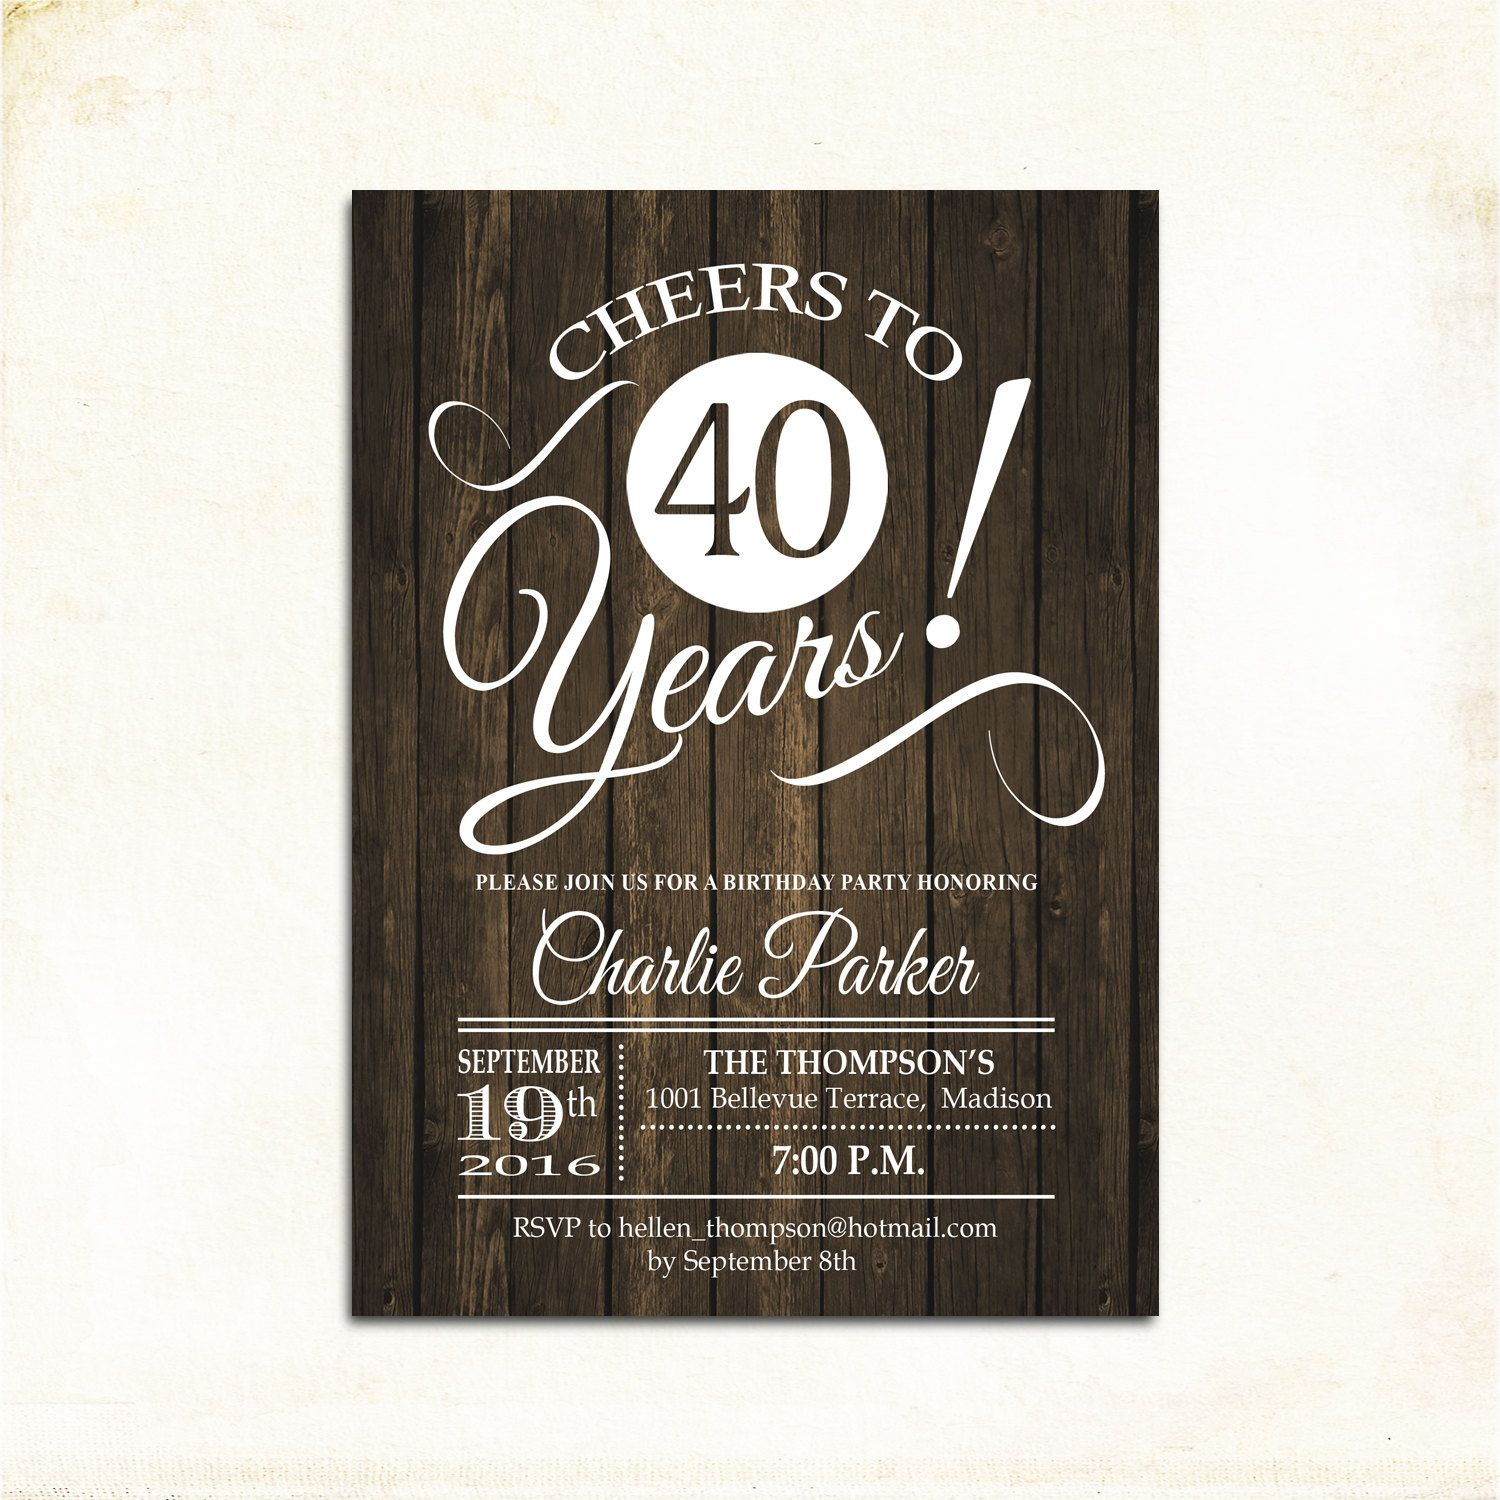 40 year old birthday invitation ideas ; 40Th-Birthday-Invitations-for-the-perfection-of-your-idea-in-organizing-your-invitation-becomes-more-fun-and-special-20